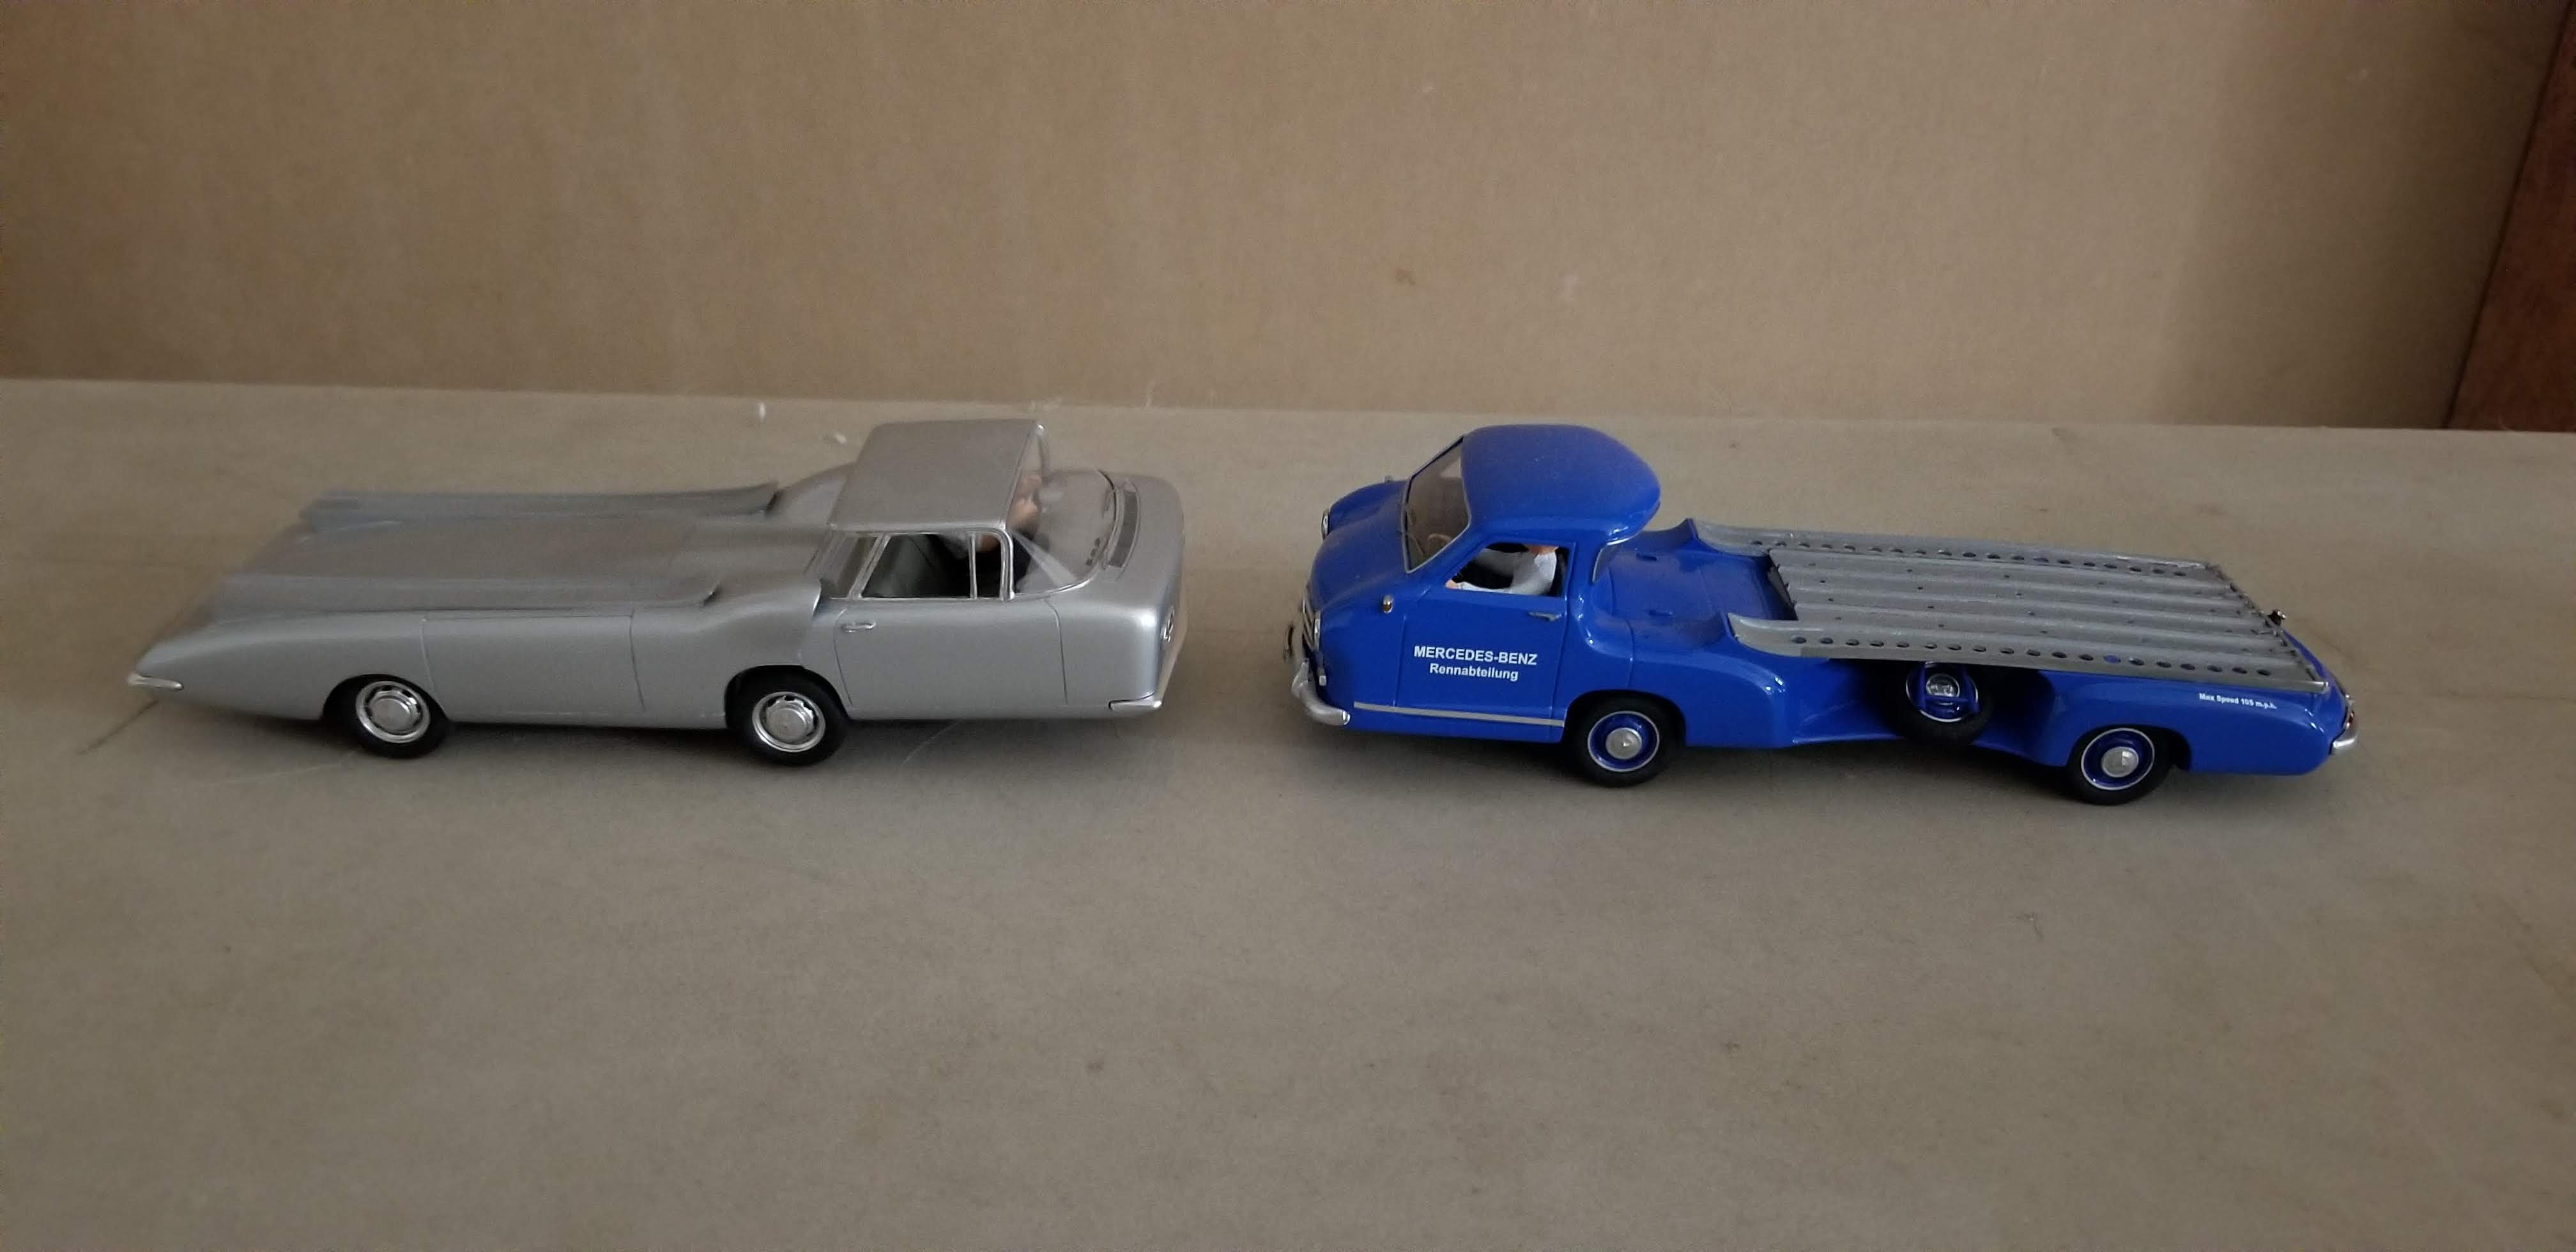 Cheetah Transporter and mercedes scale models